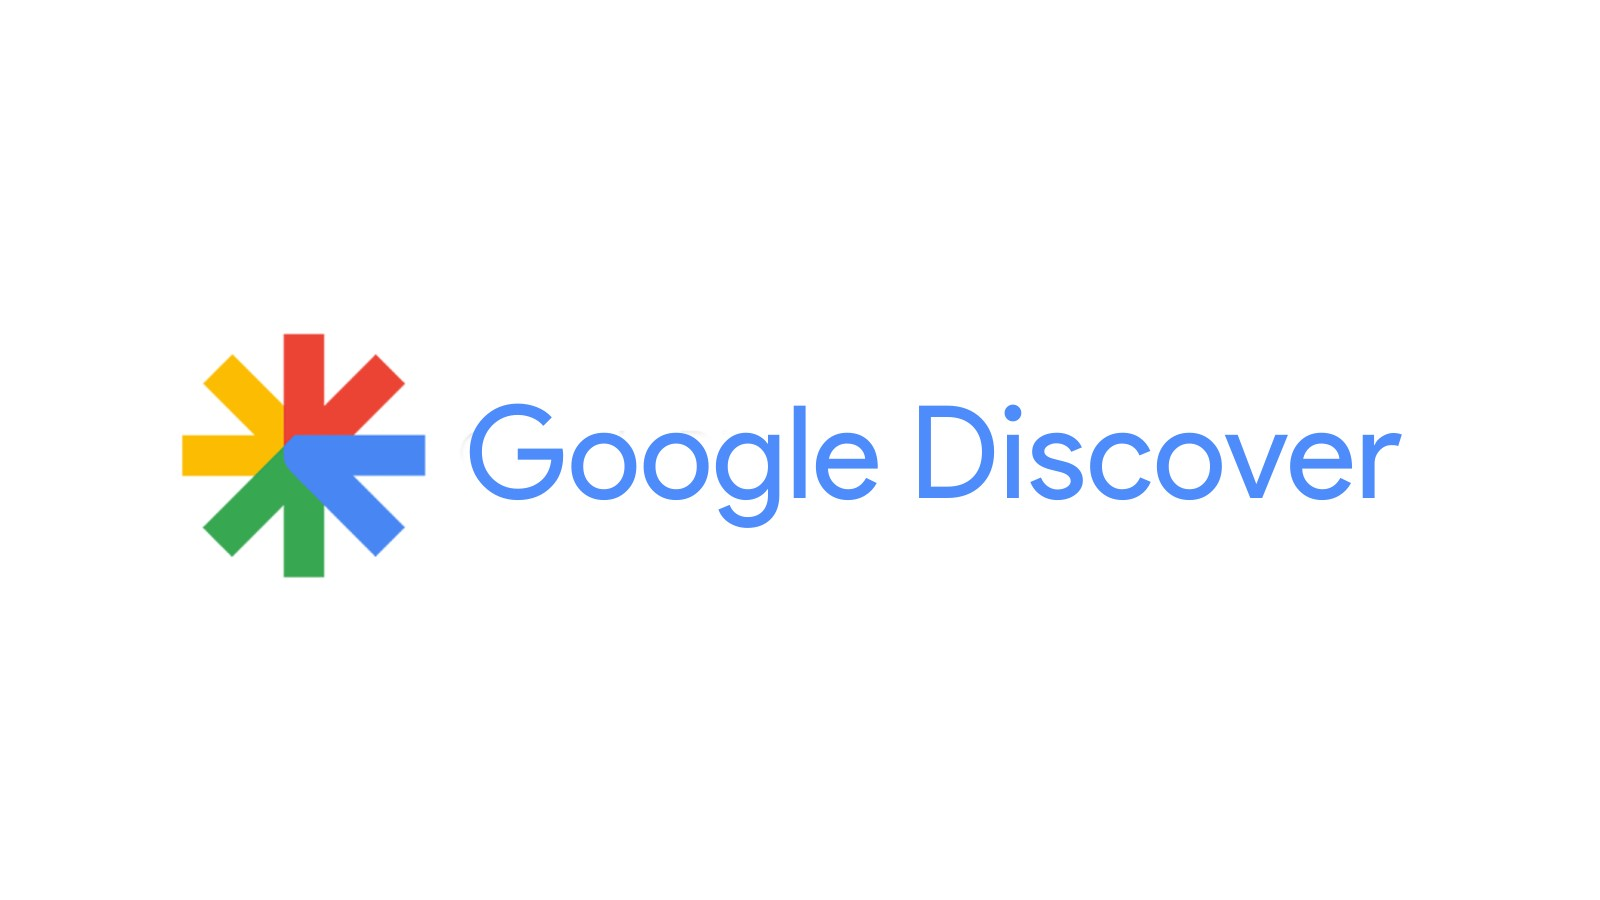 Google Discover starts showing users old news, but there may be a good explanation